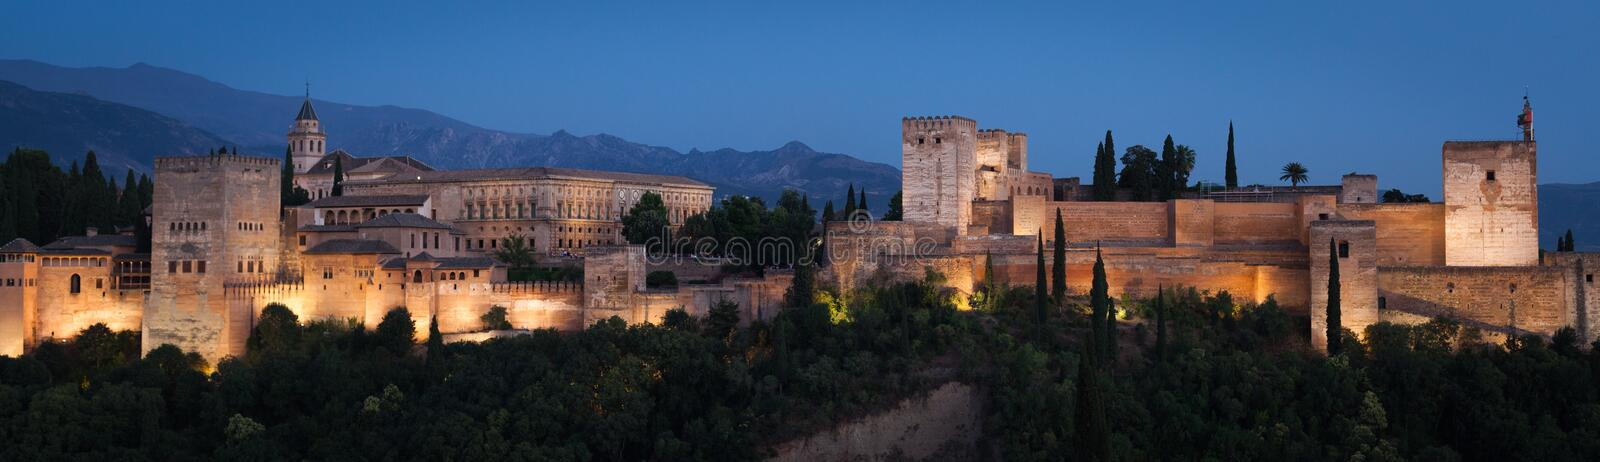 Alhambra in Spain`s Granada during the summer season stock photography